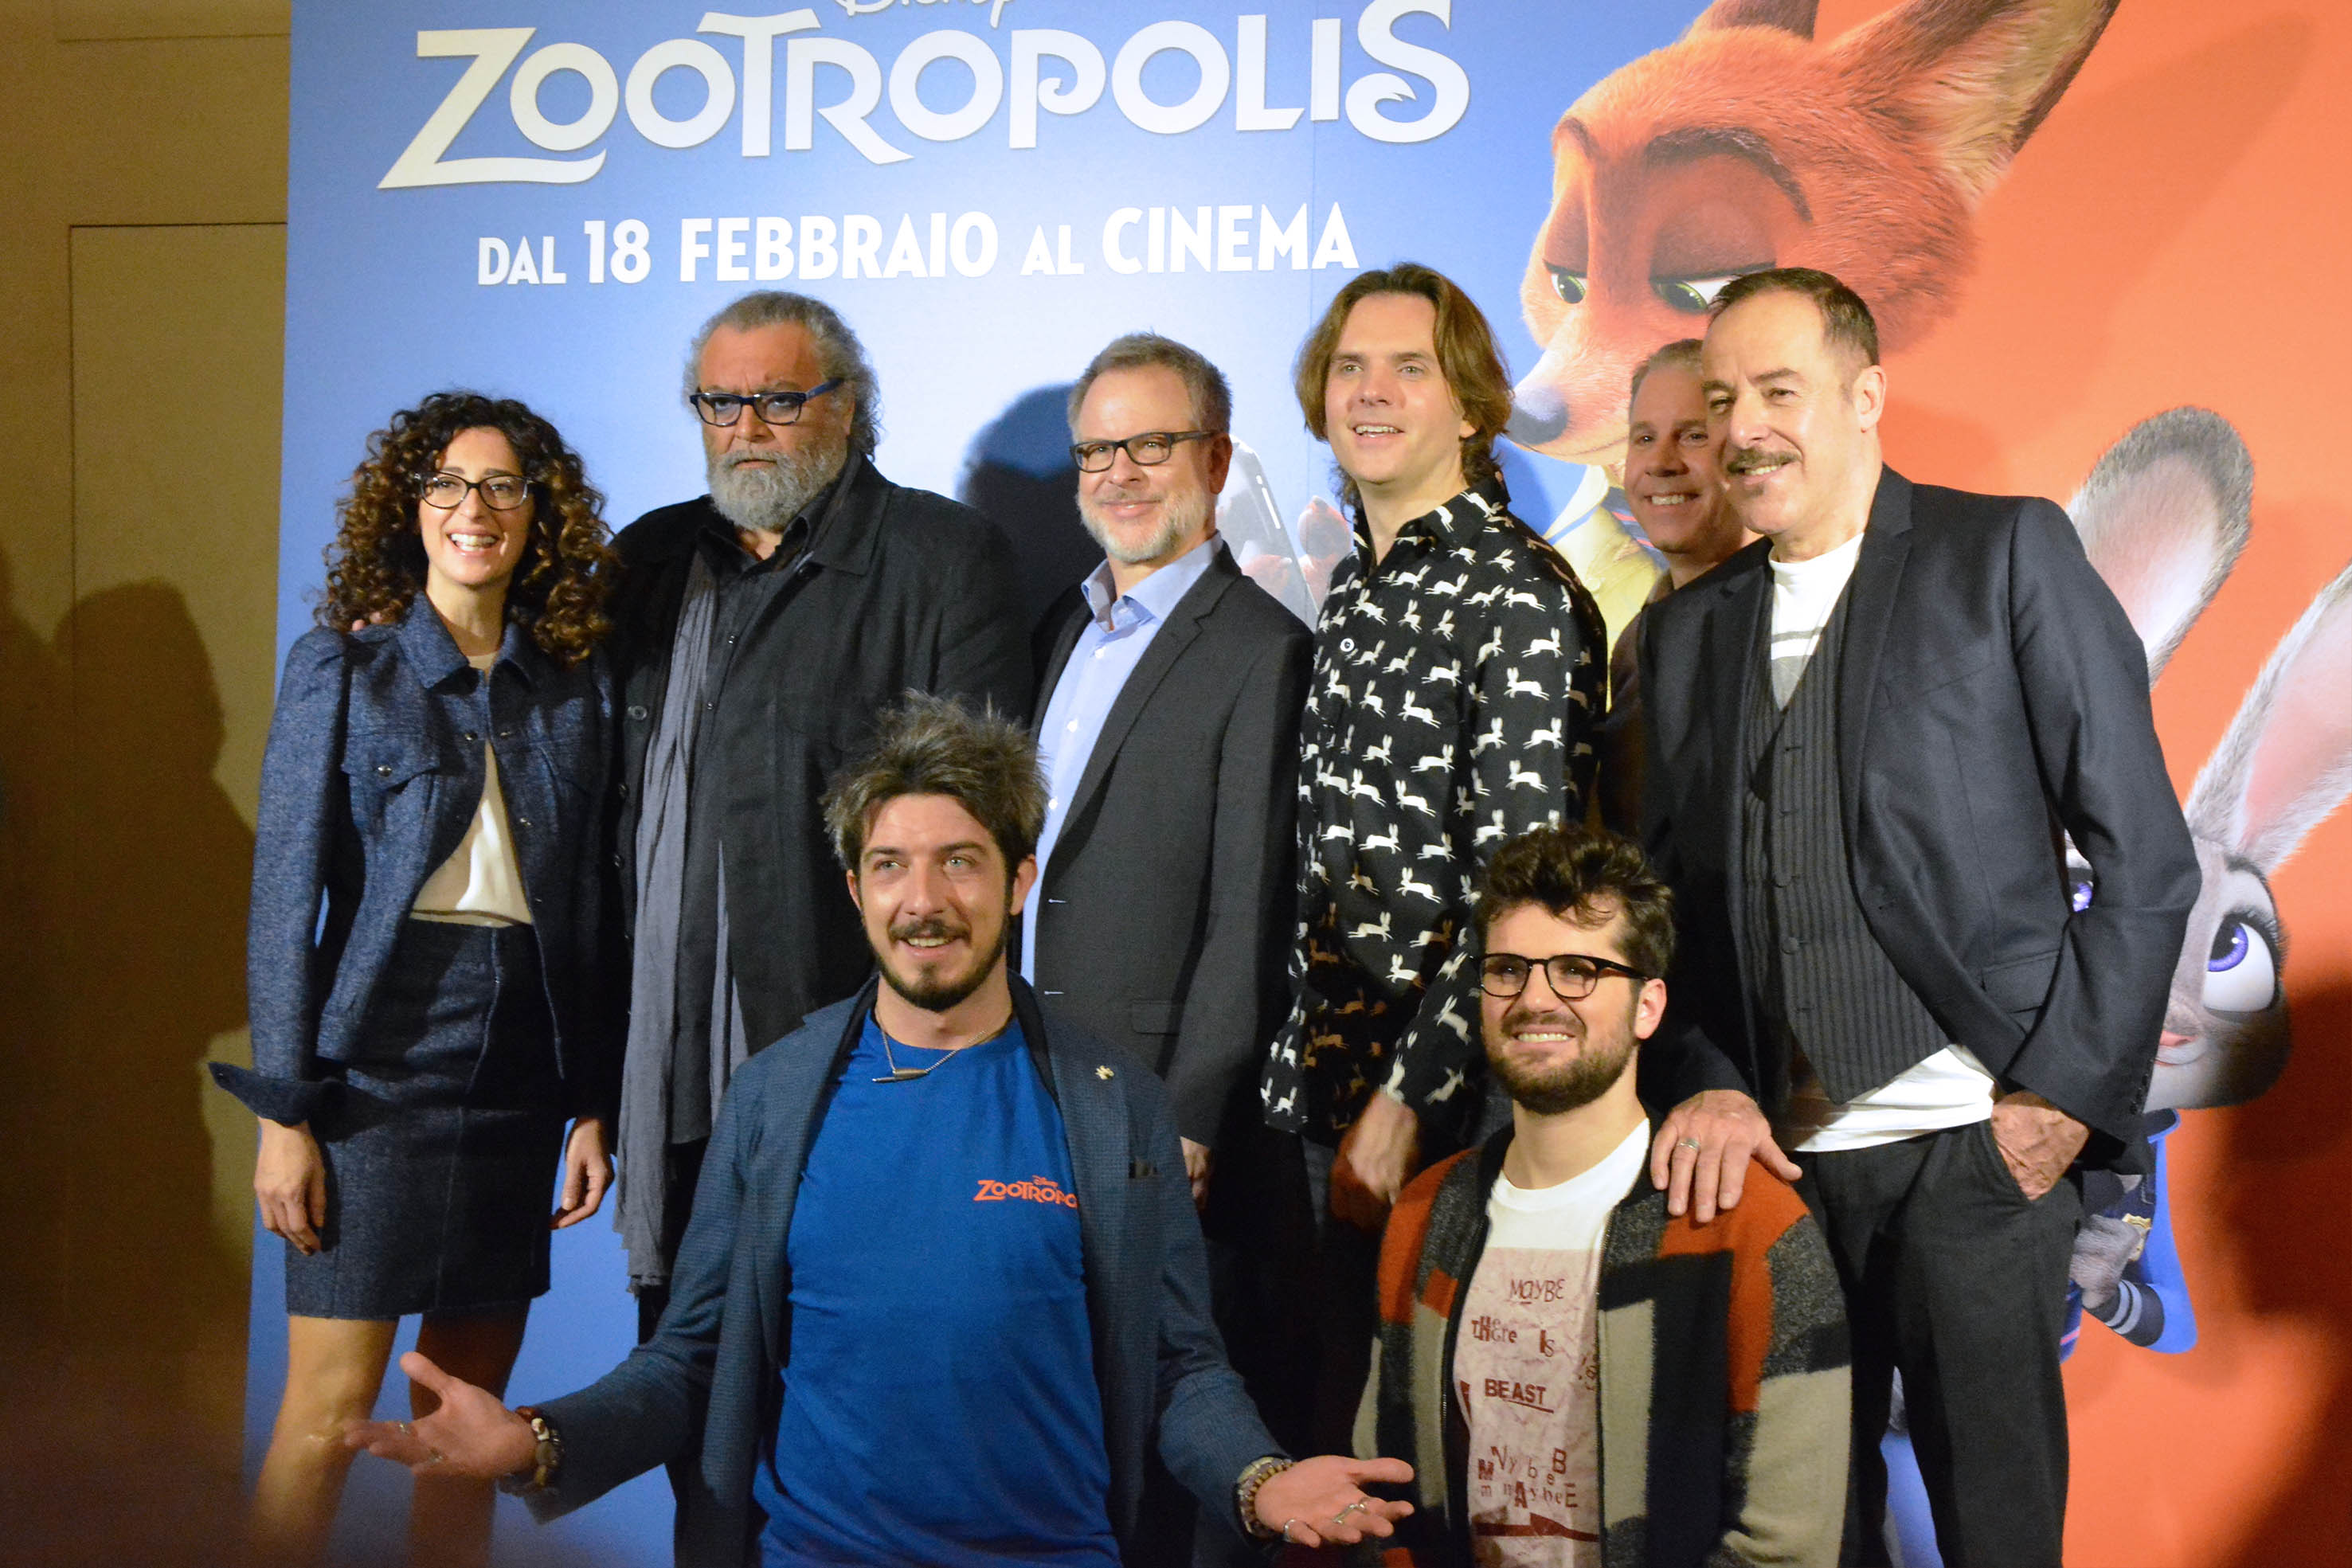 Photo Call di Zootropolis